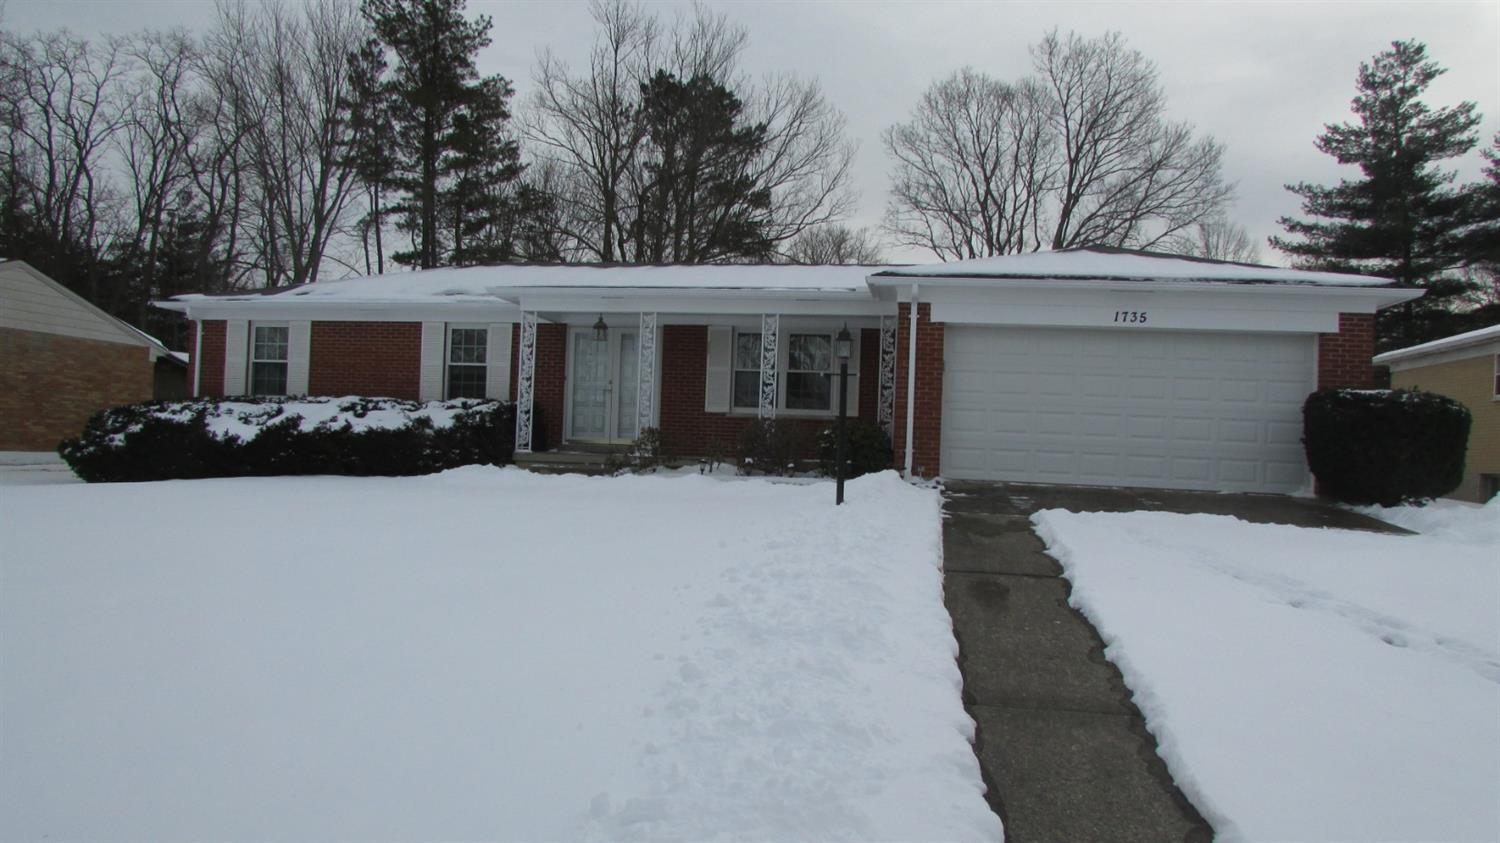 Property for sale at 1735 Millspring Court, Springfield Twp.,  OH 45231